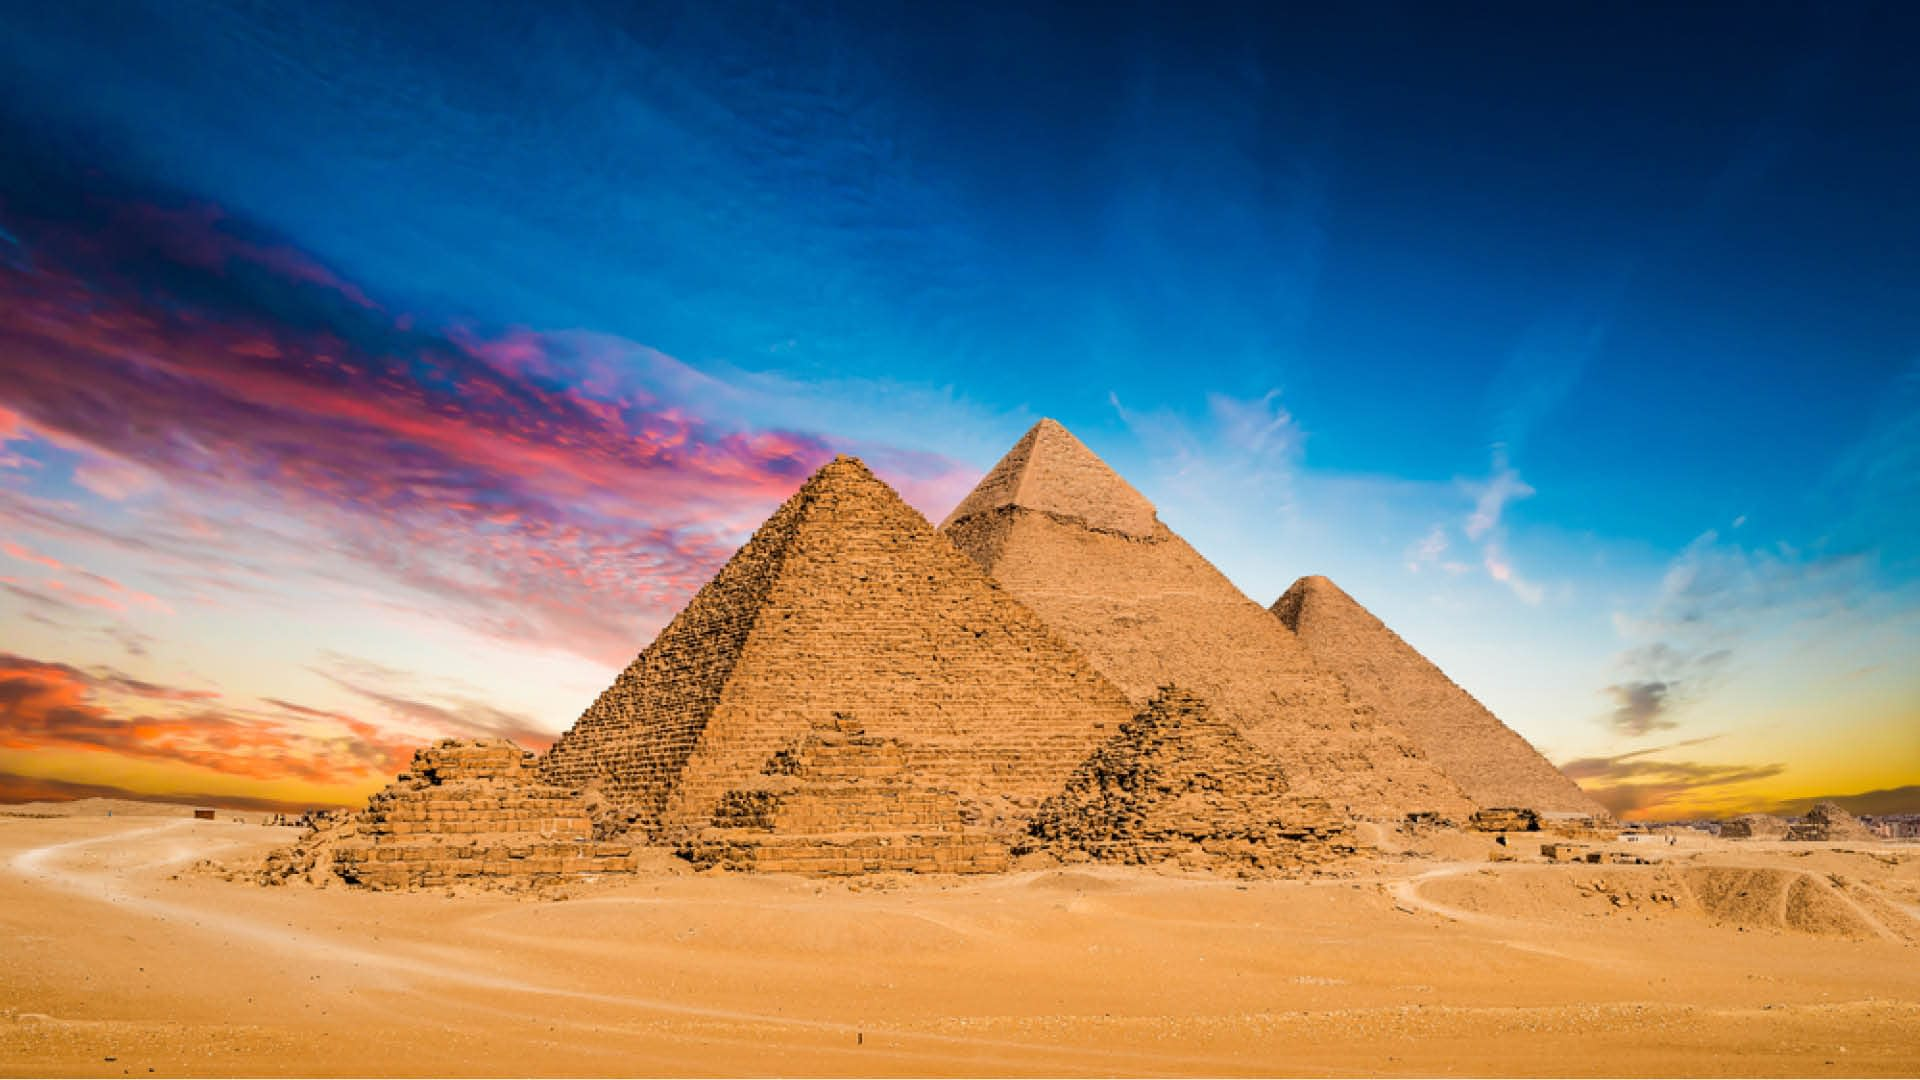 The Great Pyramid of Giza - Great Sphinx of Giza